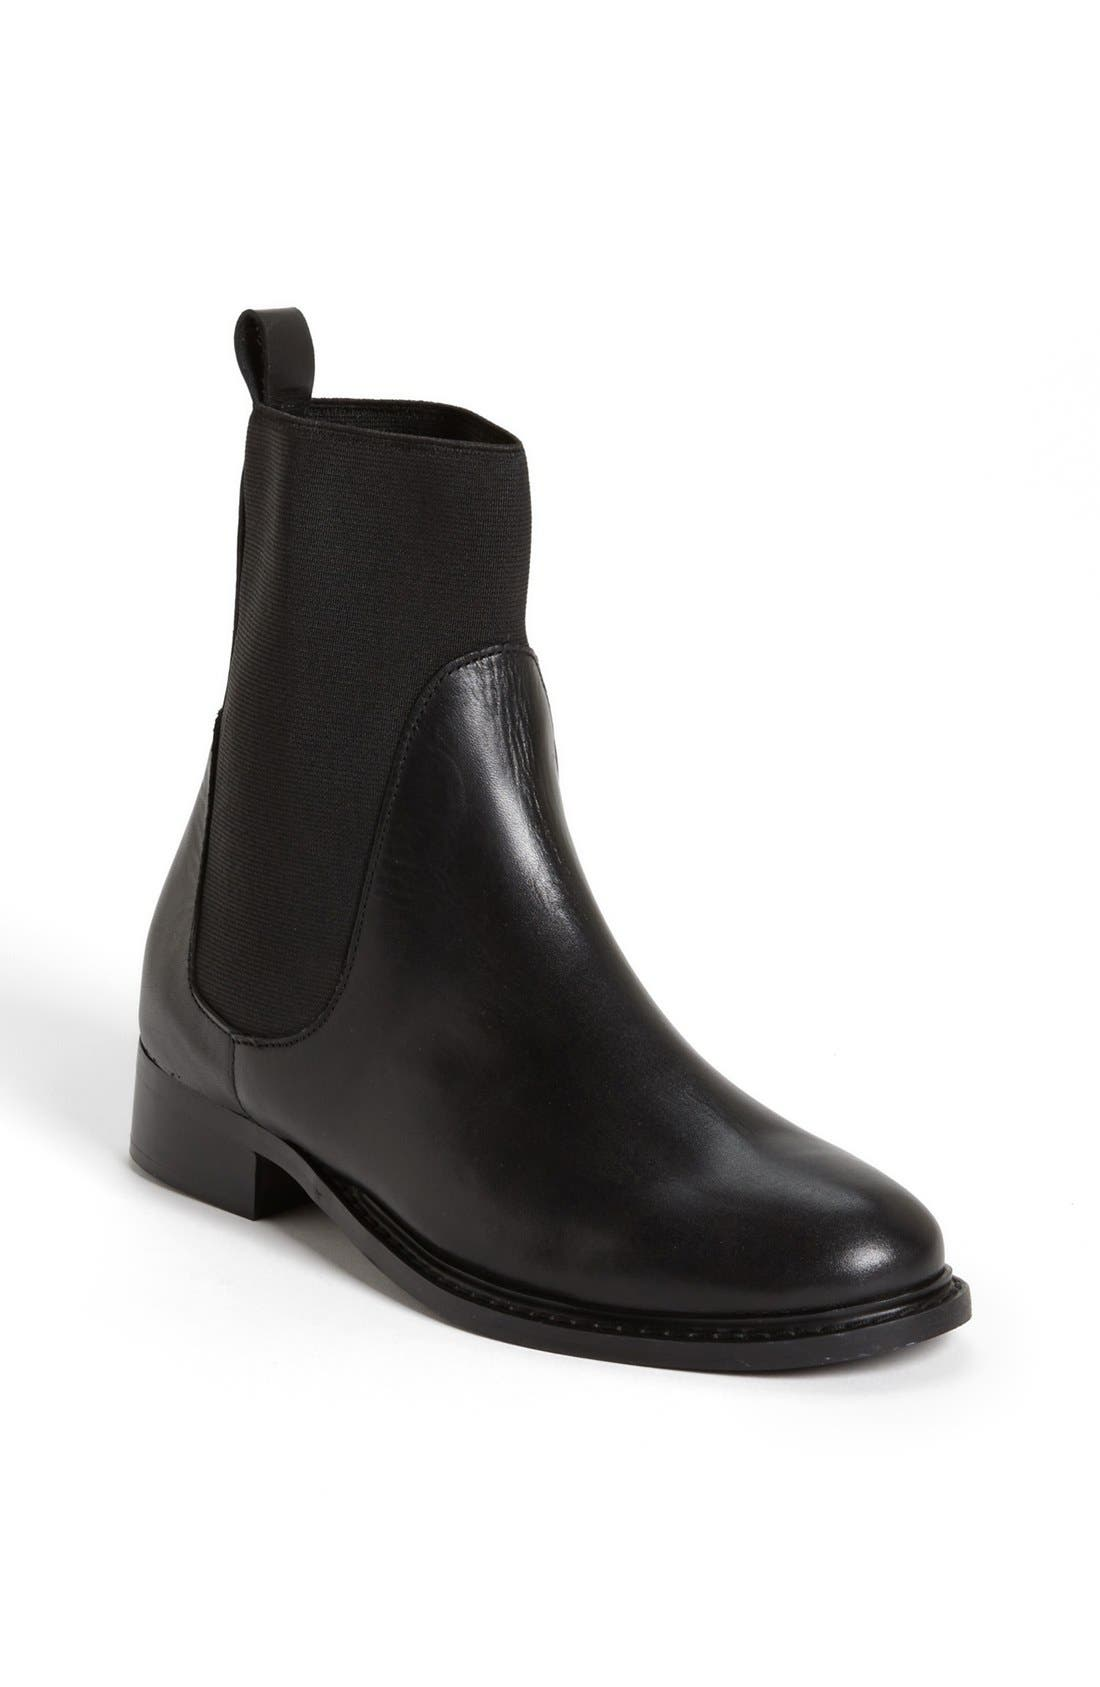 Alternate Image 1 Selected - Topshop 'Alite' Chelsea Boot